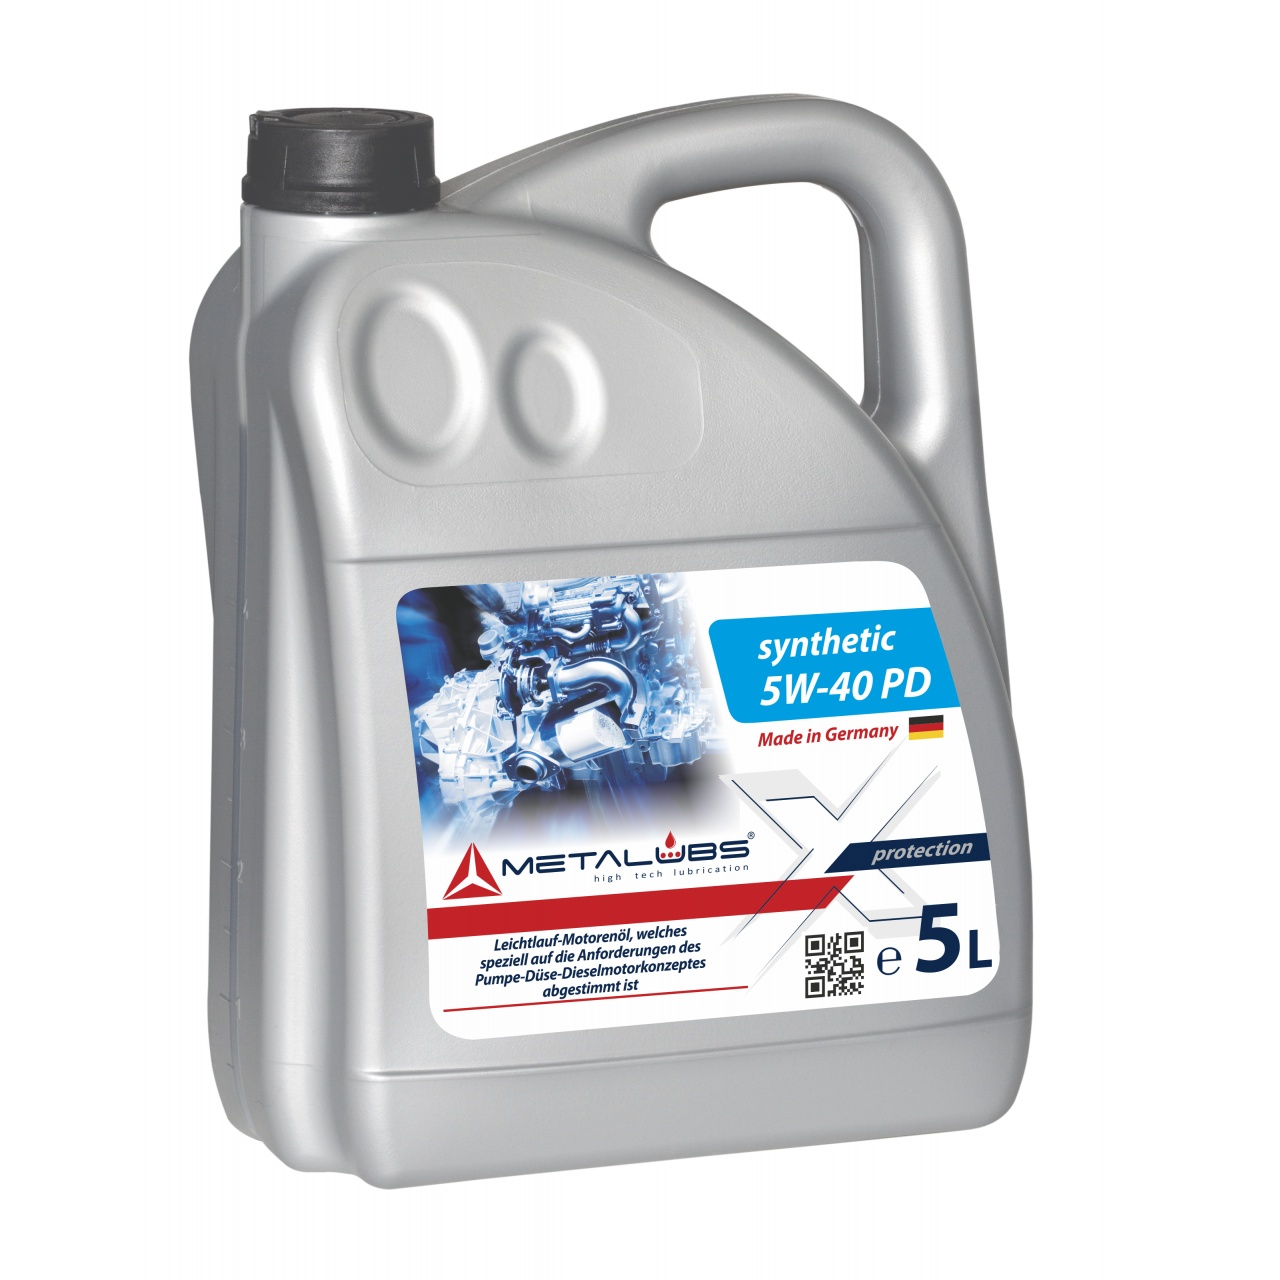 Synthetic 5w-40 PD 5l